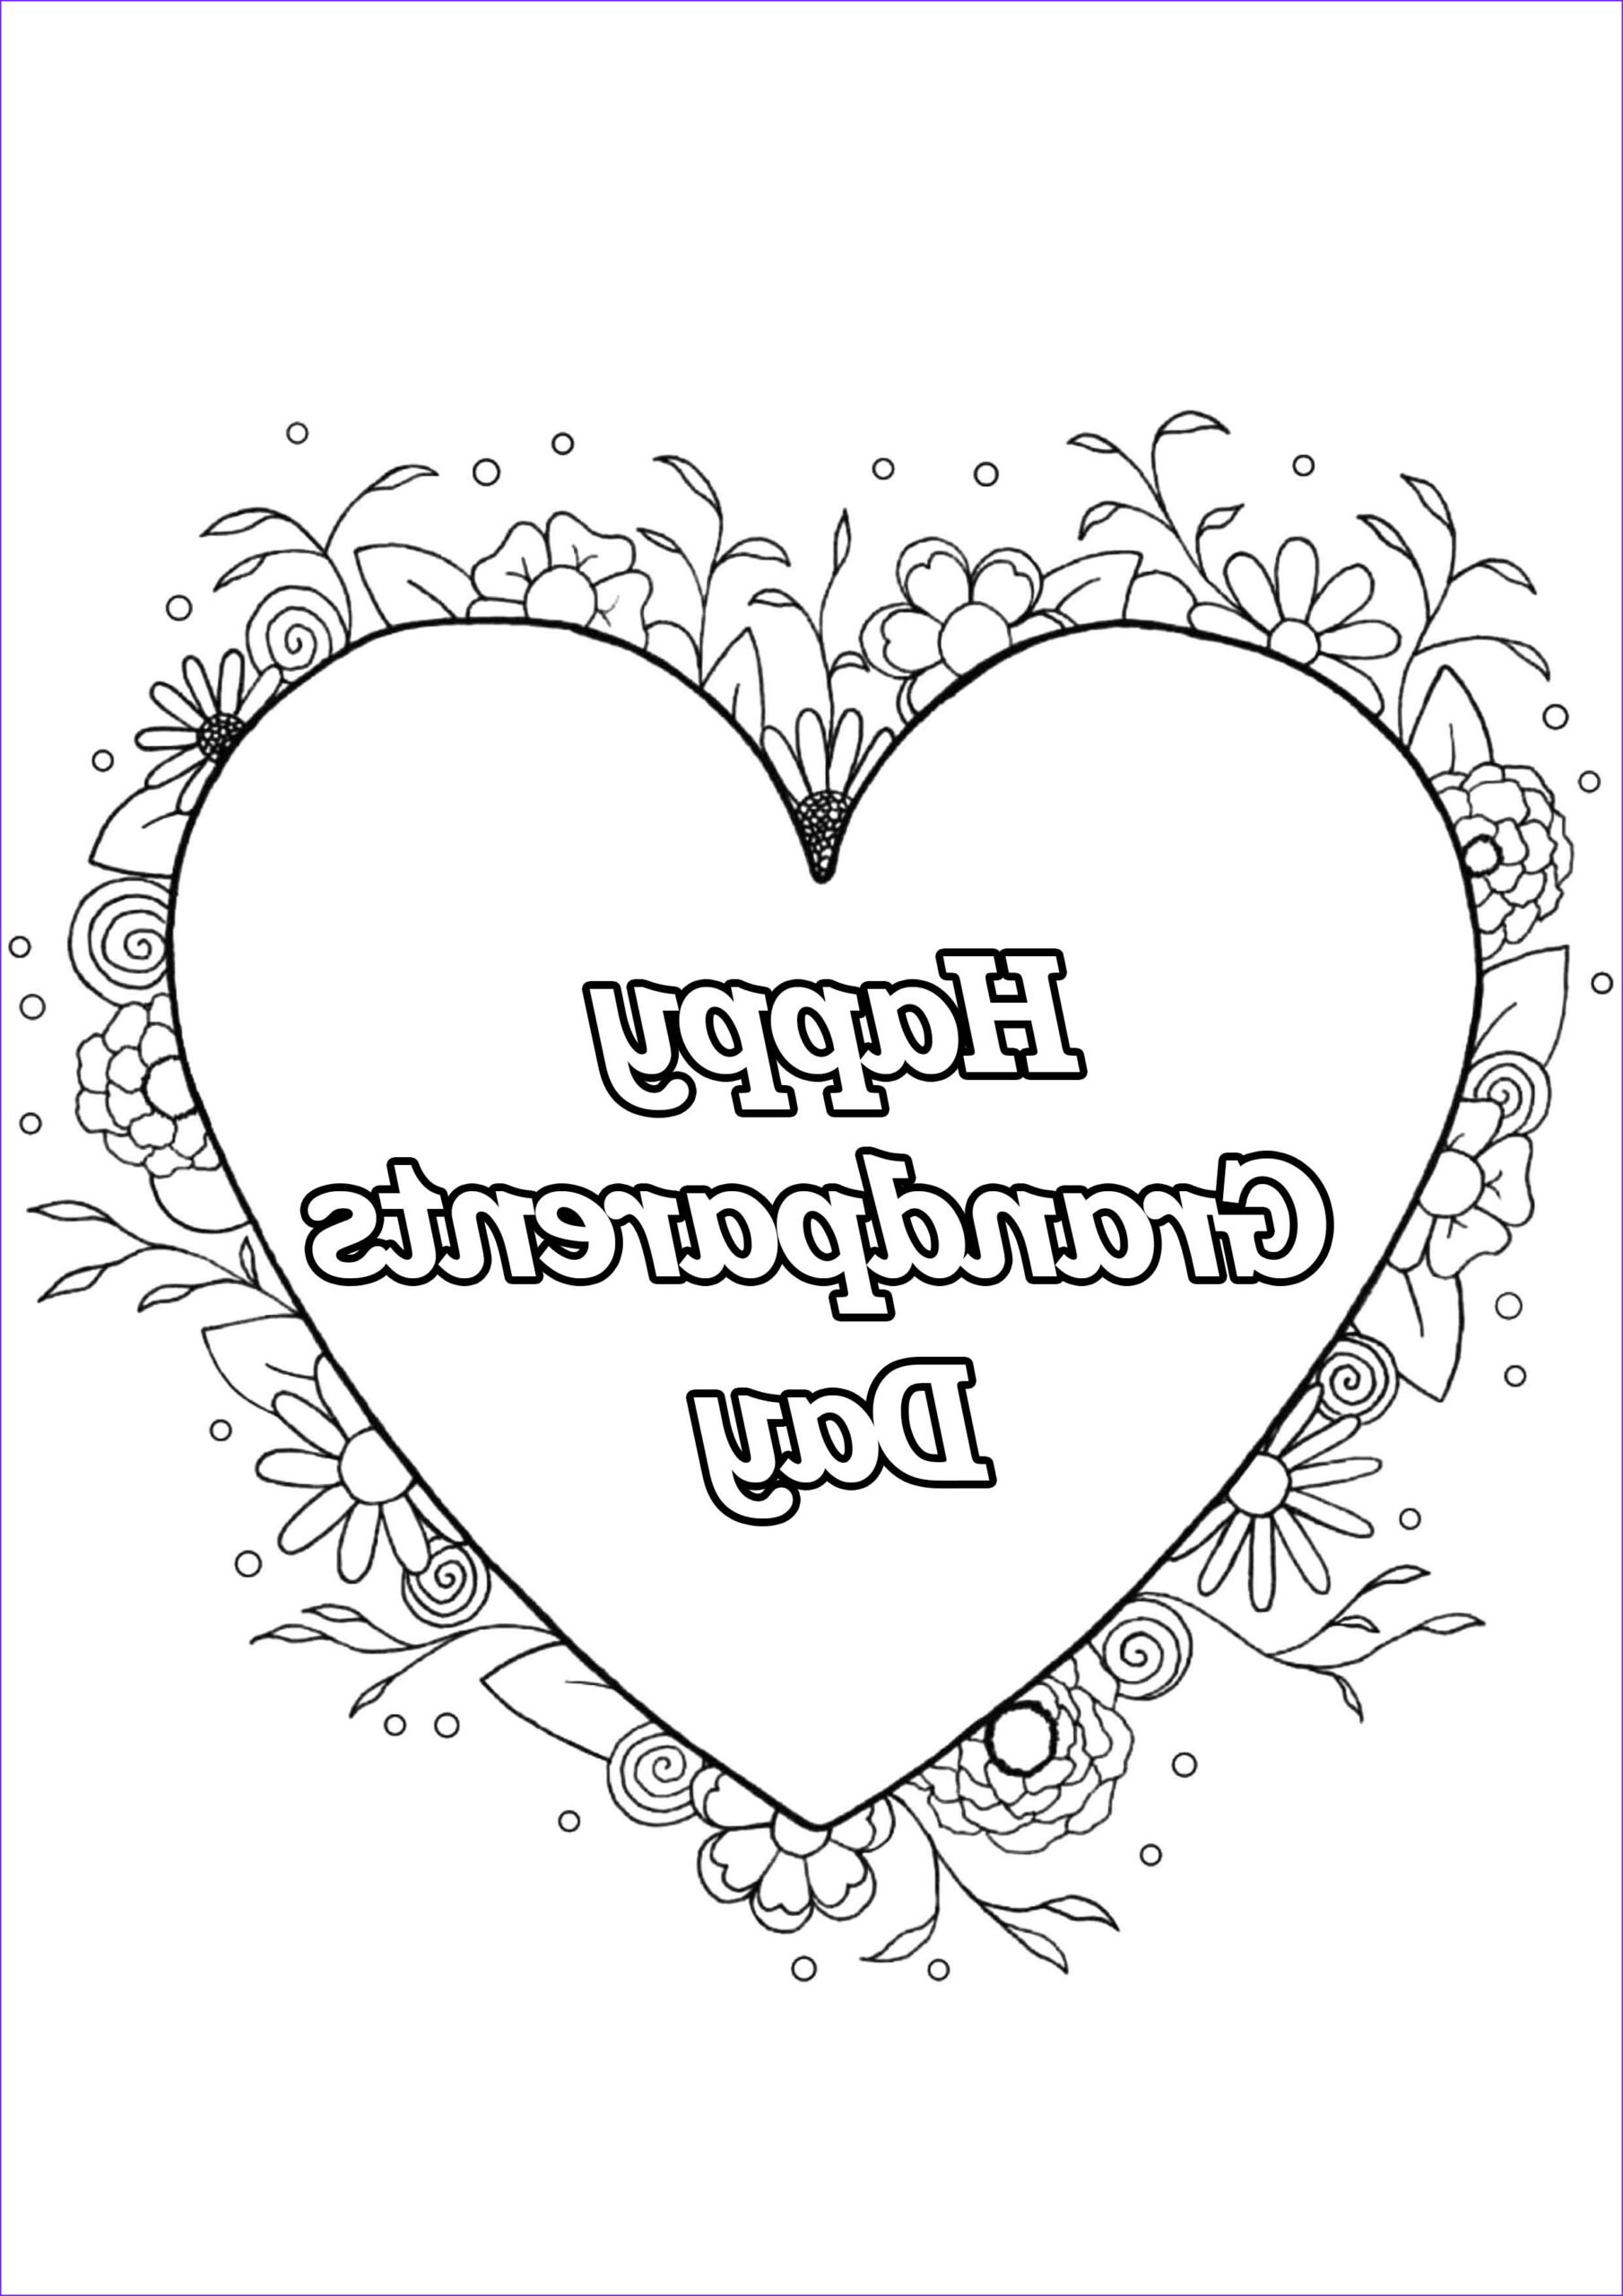 Grandparents Day Coloring Sheets Luxury Images Grandparents Day 4 Gr&parents Day Adult Coloring Pages